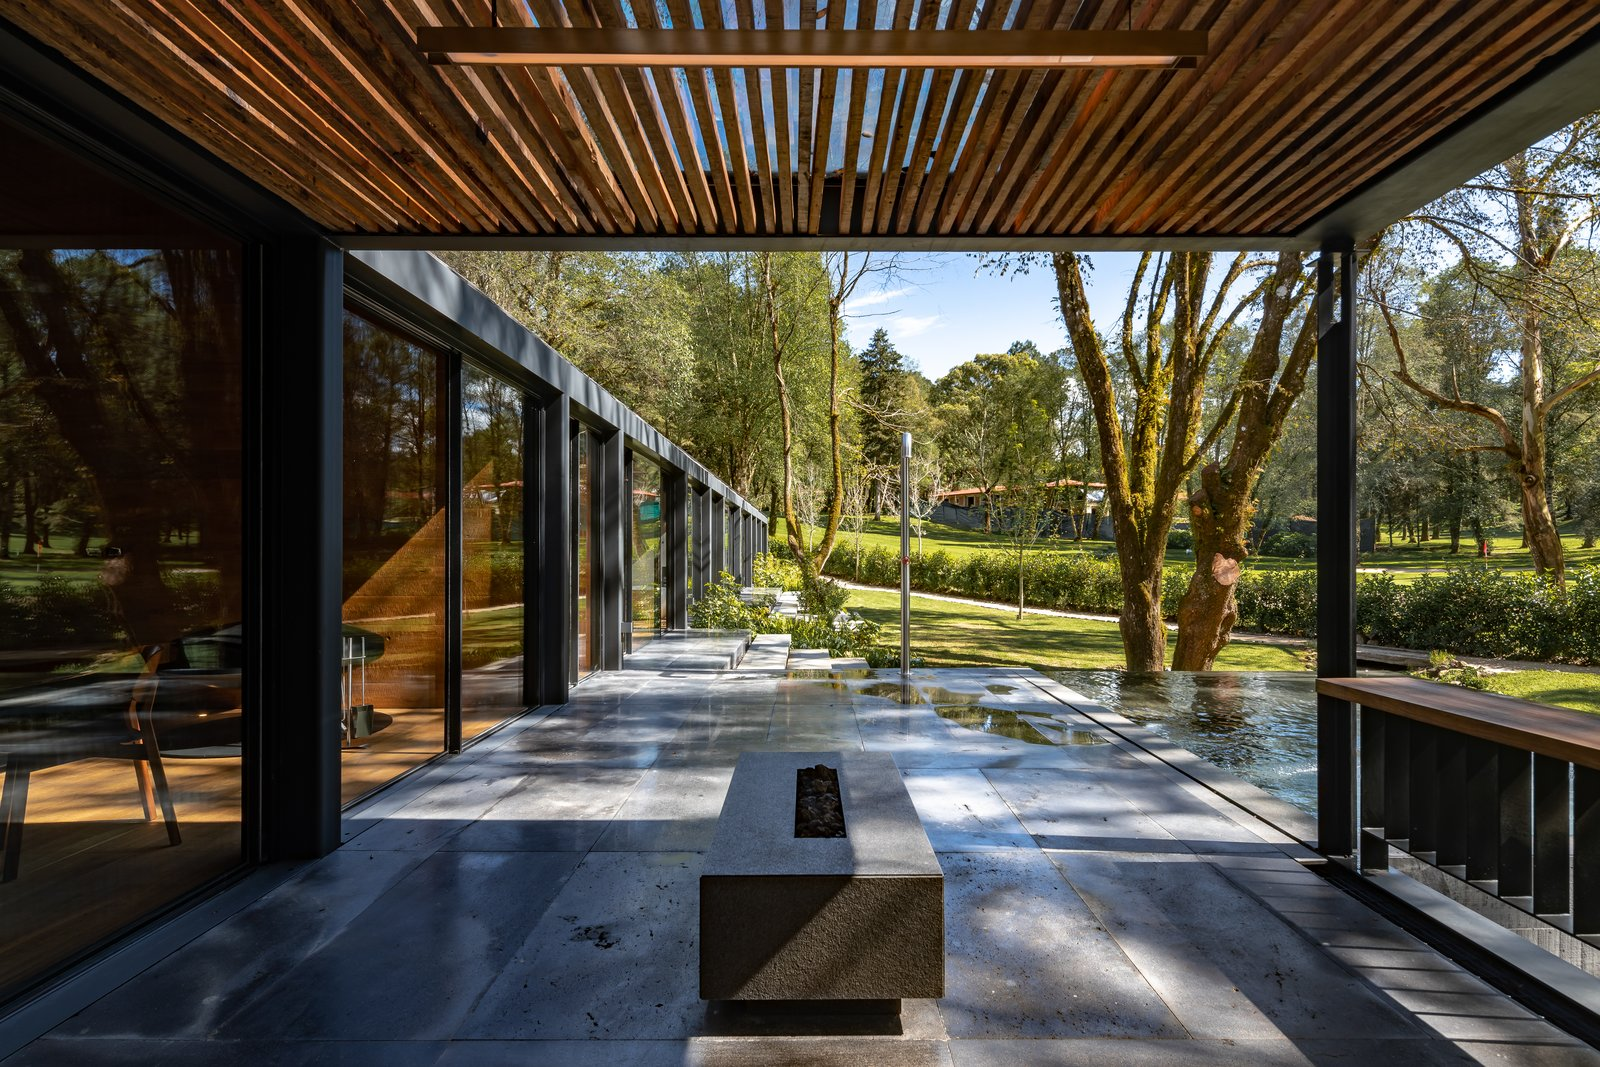 Outdoor, Trees, Stone Patio, Porch, Deck, Back Yard, Hanging Lighting, Grass, Wood Patio, Porch, Deck, Landscape Lighting, Infinity Pools, Tubs, Shower, Large Patio, Porch, Deck, and Small Pools, Tubs, Shower  L7 Home by Augusto Fernandez